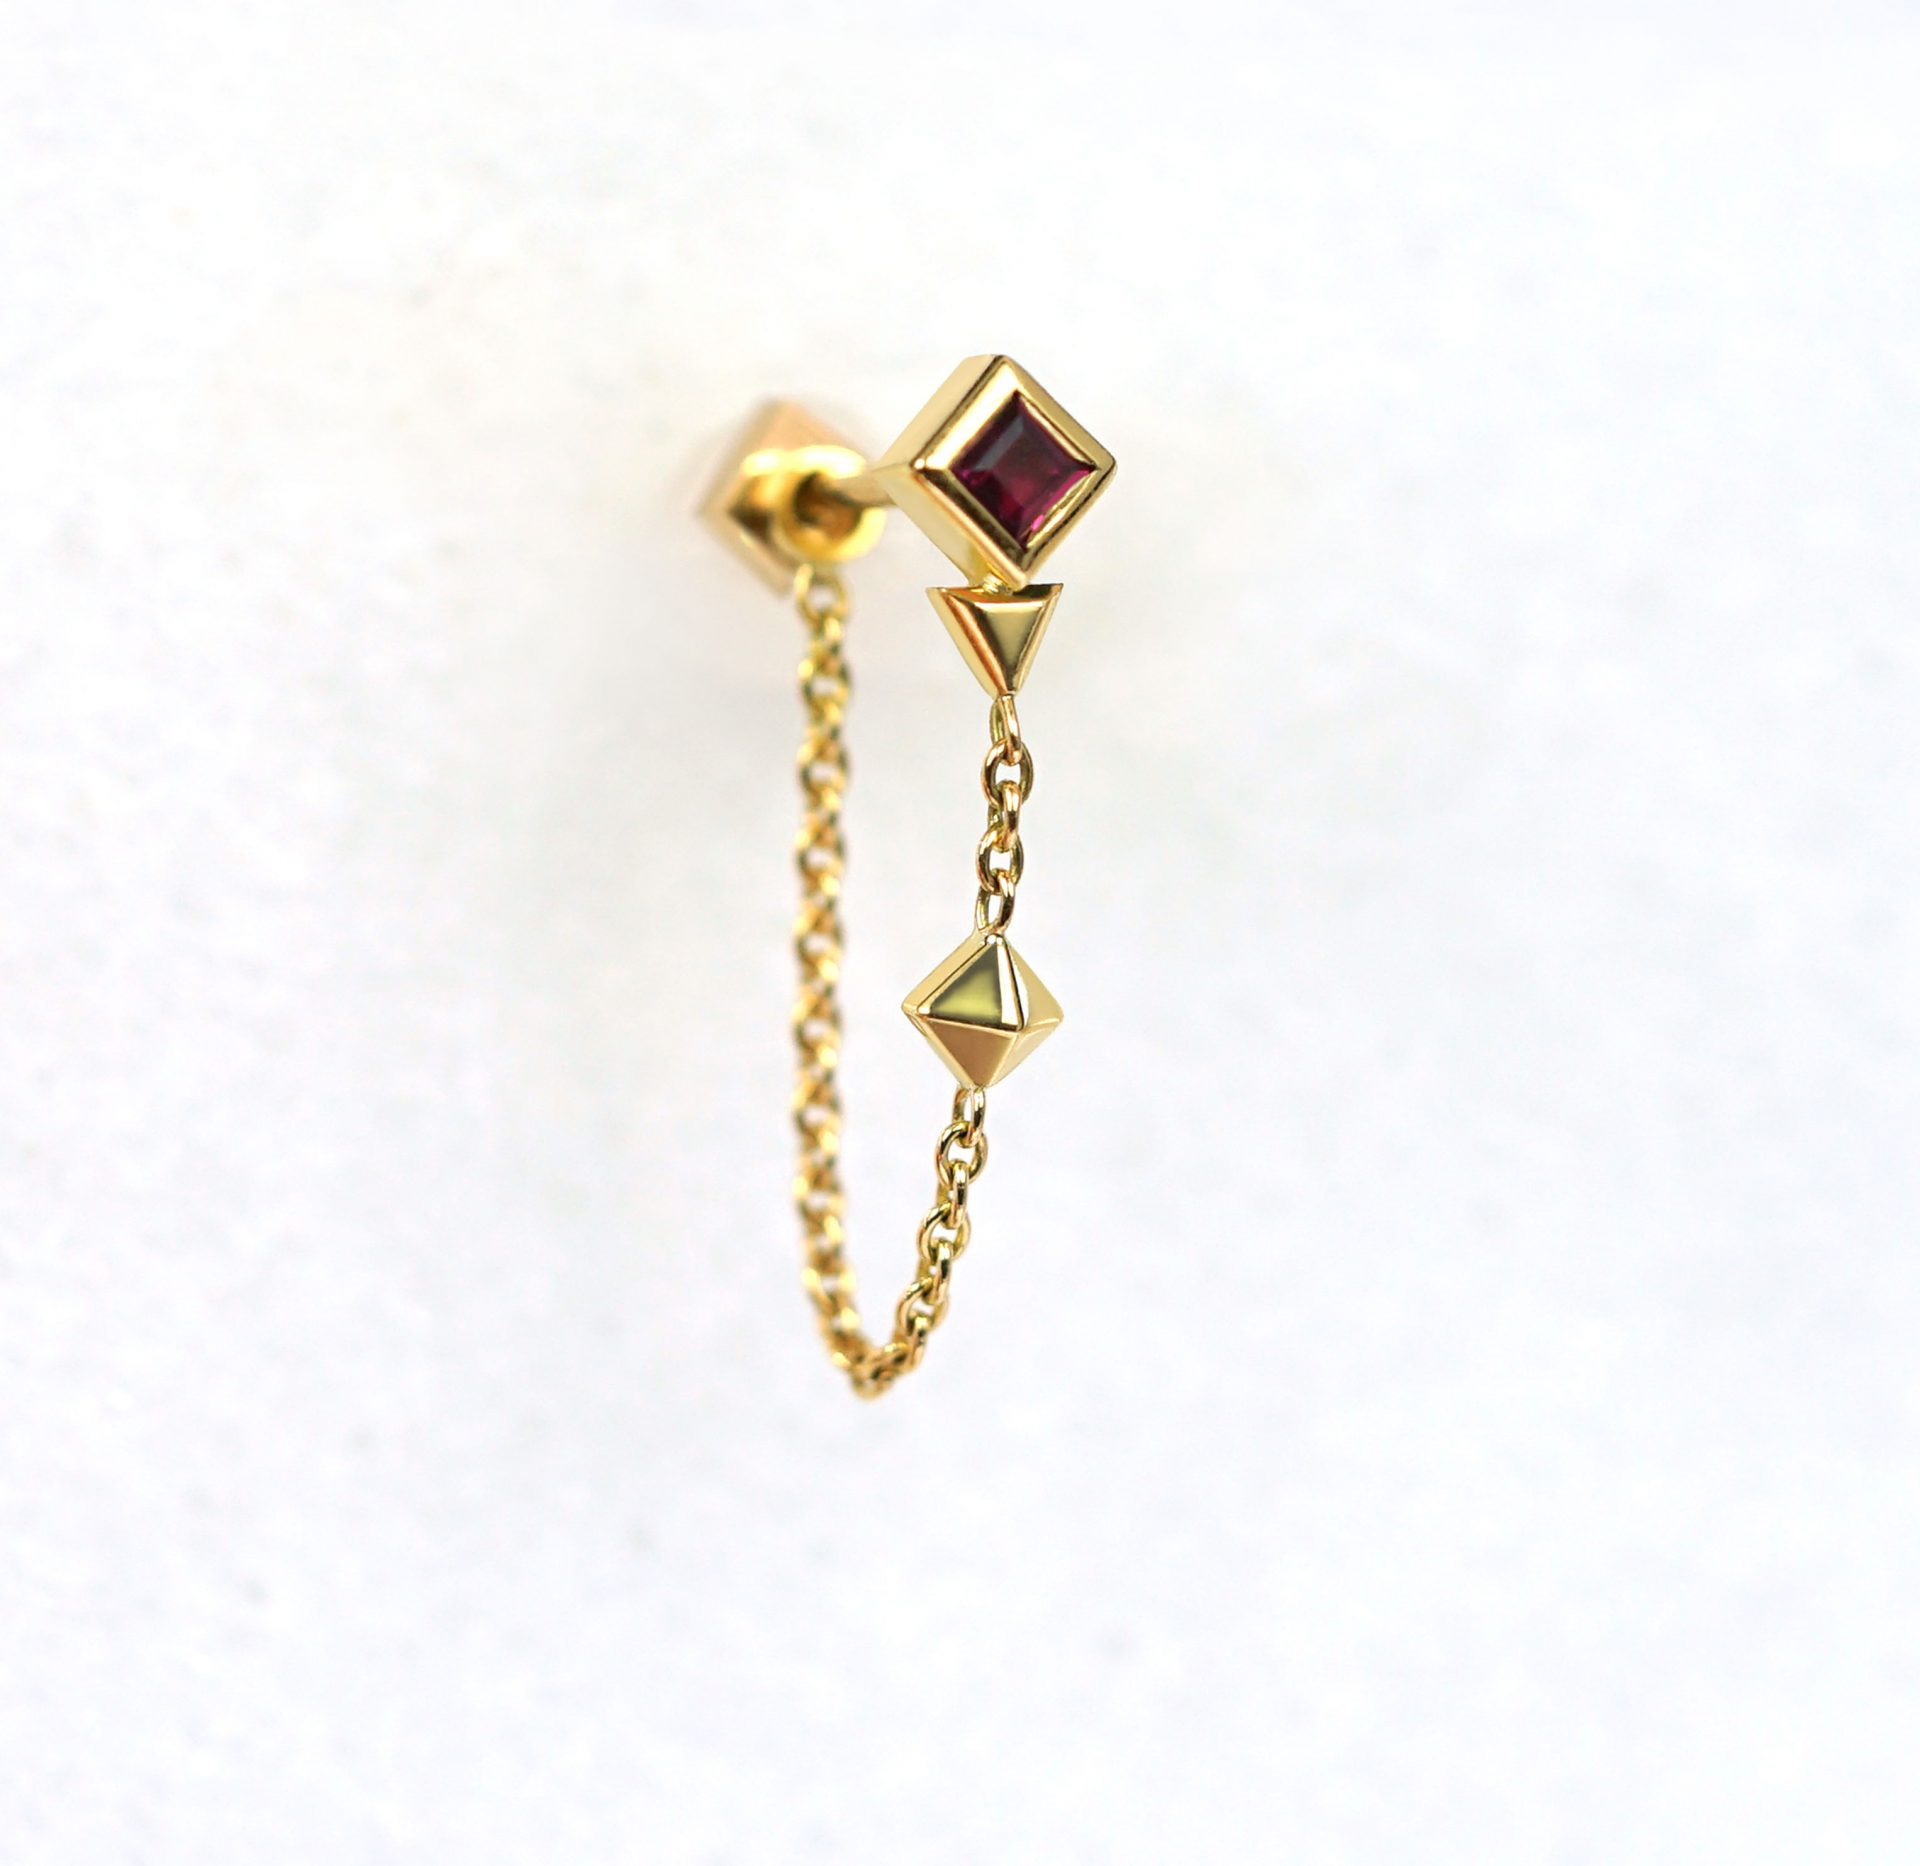 Red-Ruby-Sagittarius-Cartilage-Earring-Birthday-Gift-Sagittarius-18k-Solid-Gold–Astrology-Sign-Lena-Cohen-British-Designer